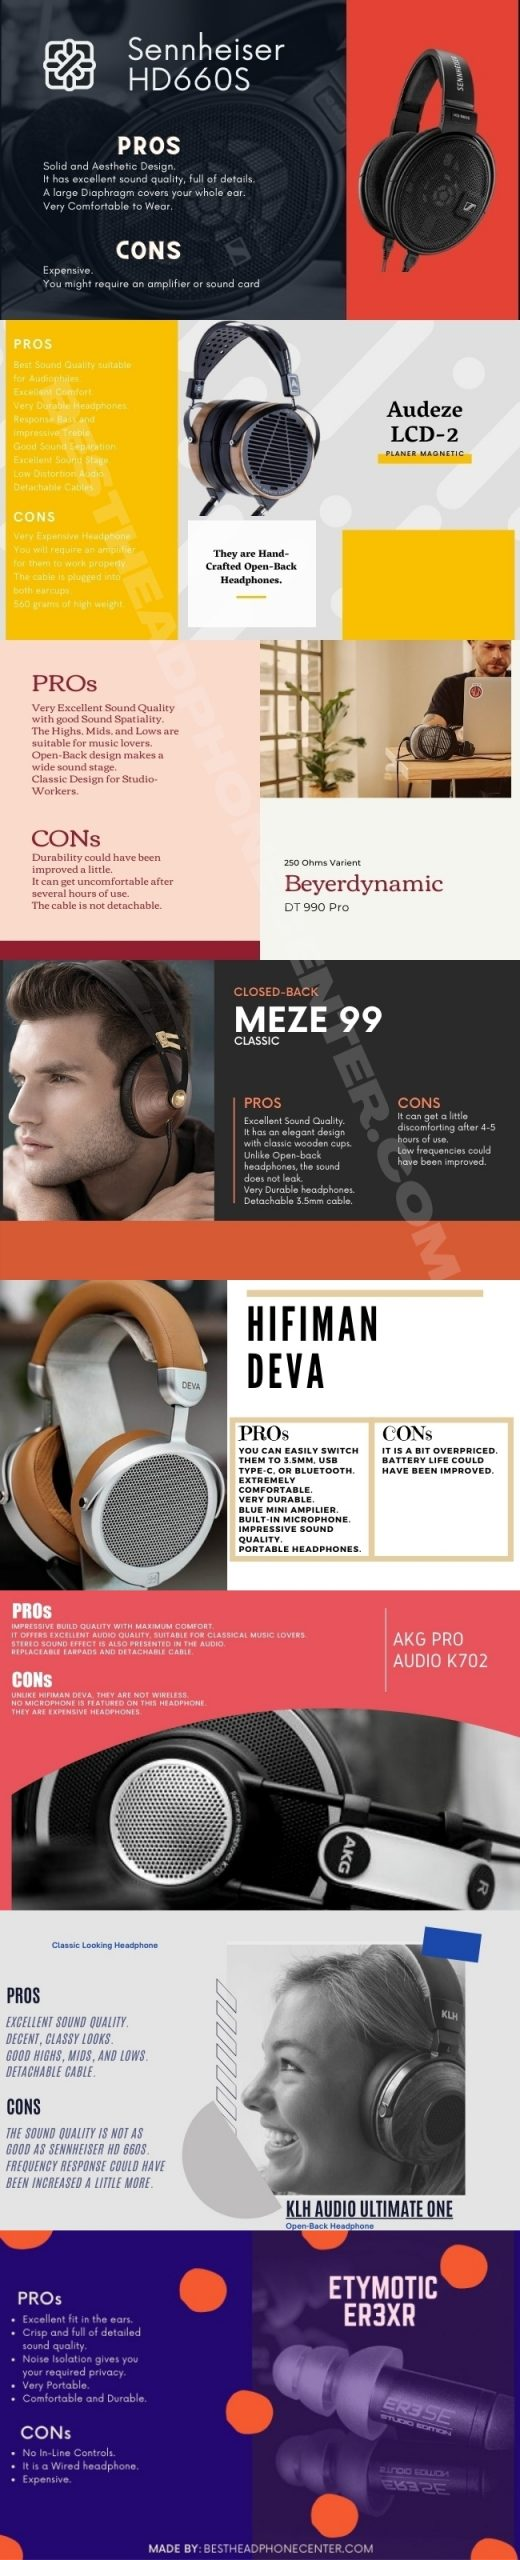 8 Best Headphones for Classical Music with Pros and Cons